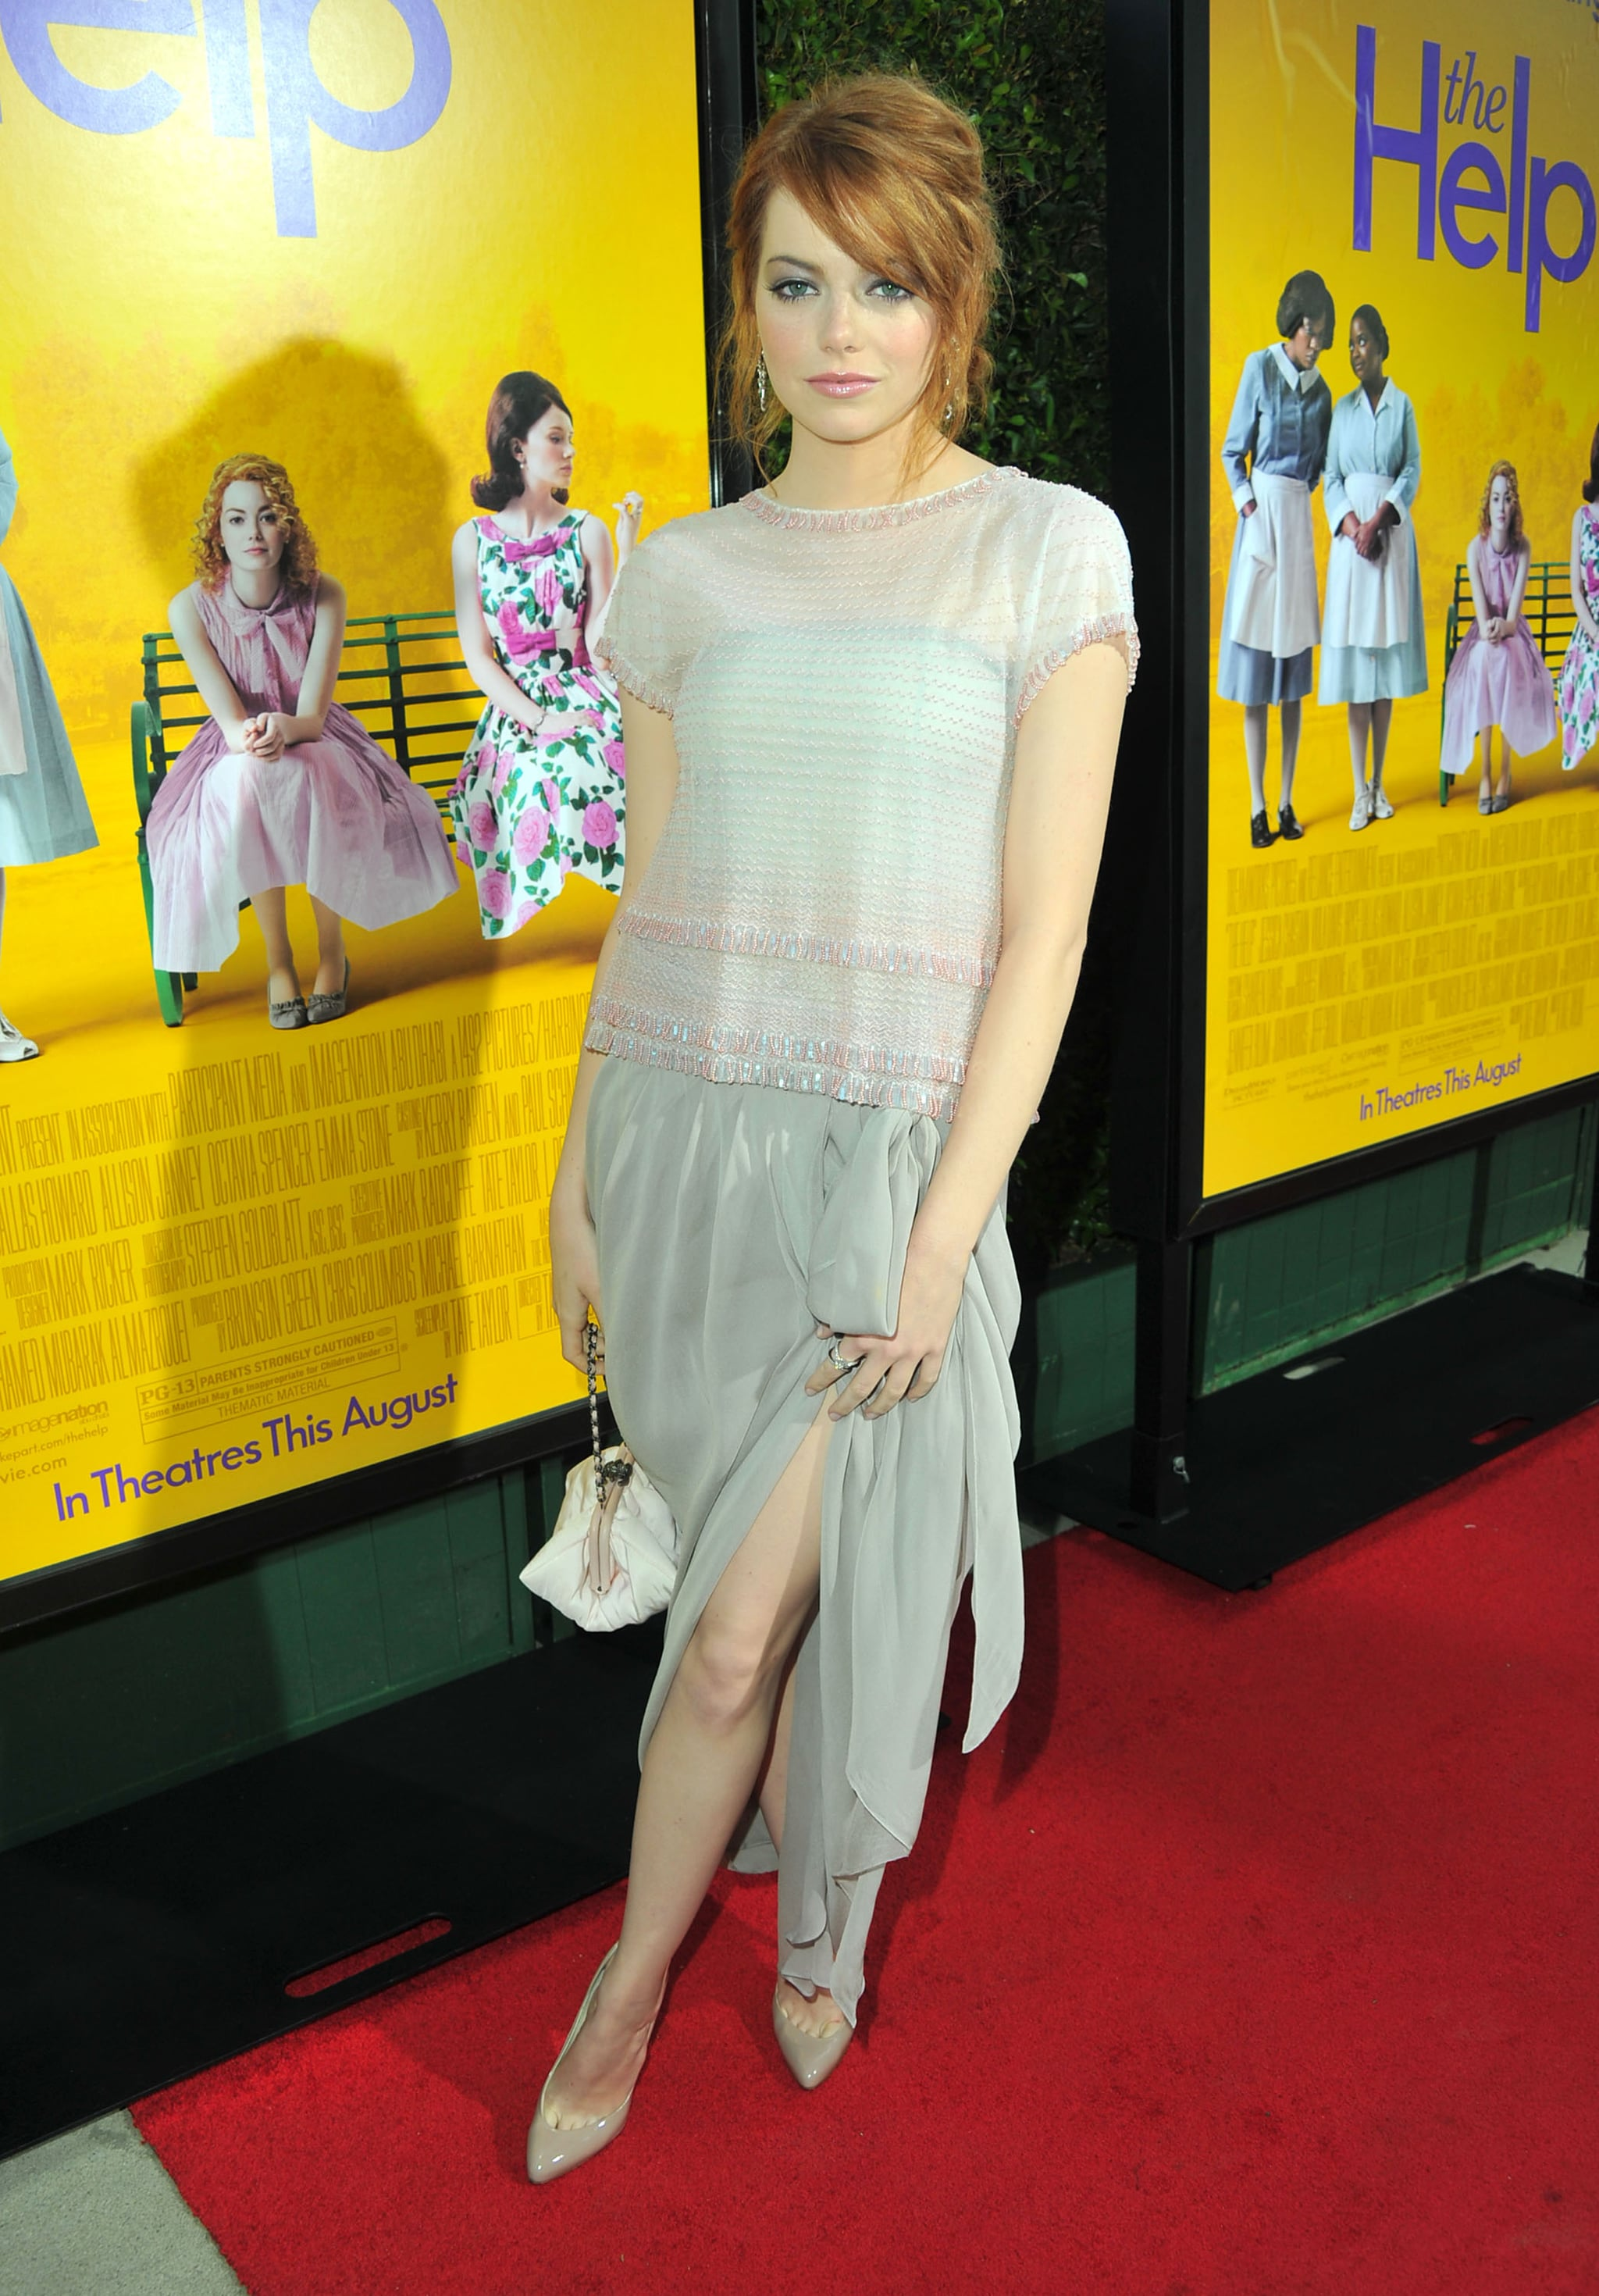 1St Choice Auto >> Catch Emma Stone In All Her Girly Glory At The Help's LA Premiere! | POPSUGAR Celebrity Australia